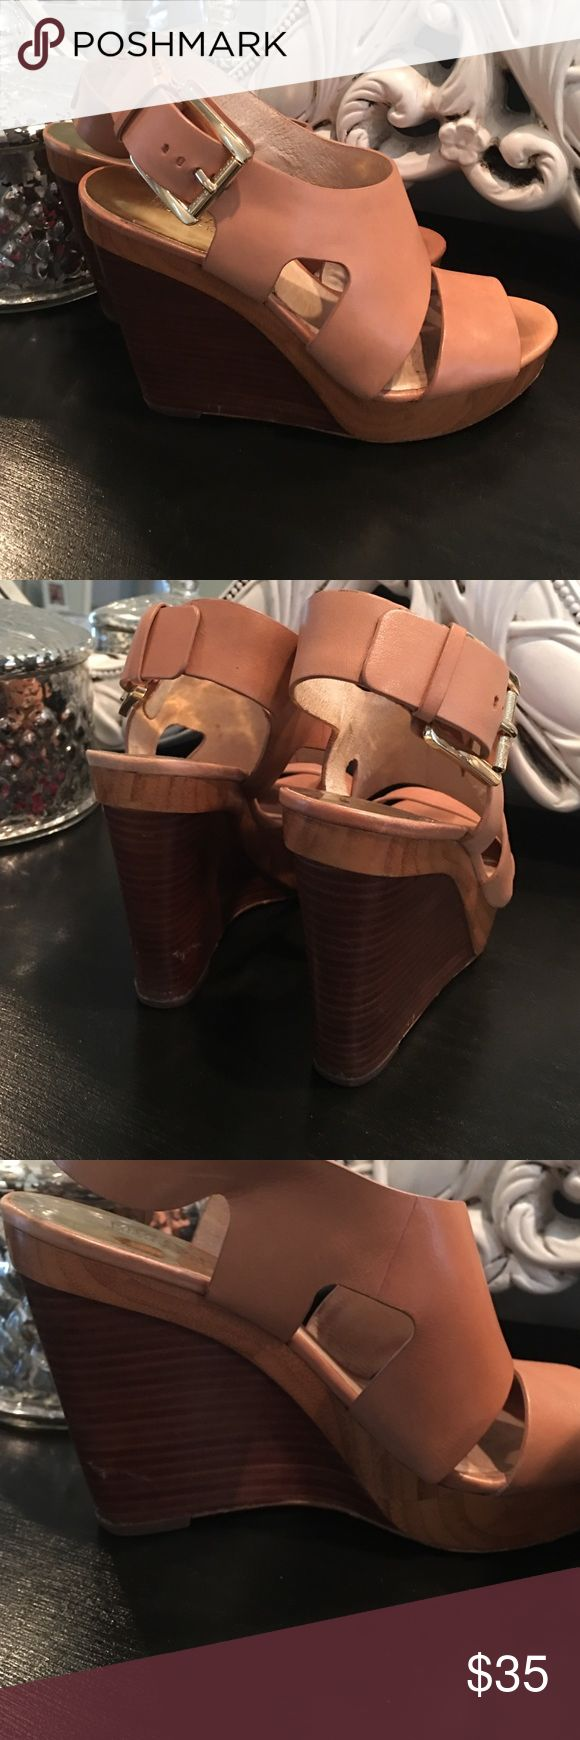 Michael Kors Tan Wedges Heels size 8 (wood trim) Gorgeous wood detail on the heel, excellent condition. Small blemish on inside left heel (cannot be seen when worn, could probably be shined out) Leather tan upper with wooden wedge. Michael Kors Shoes Wedges